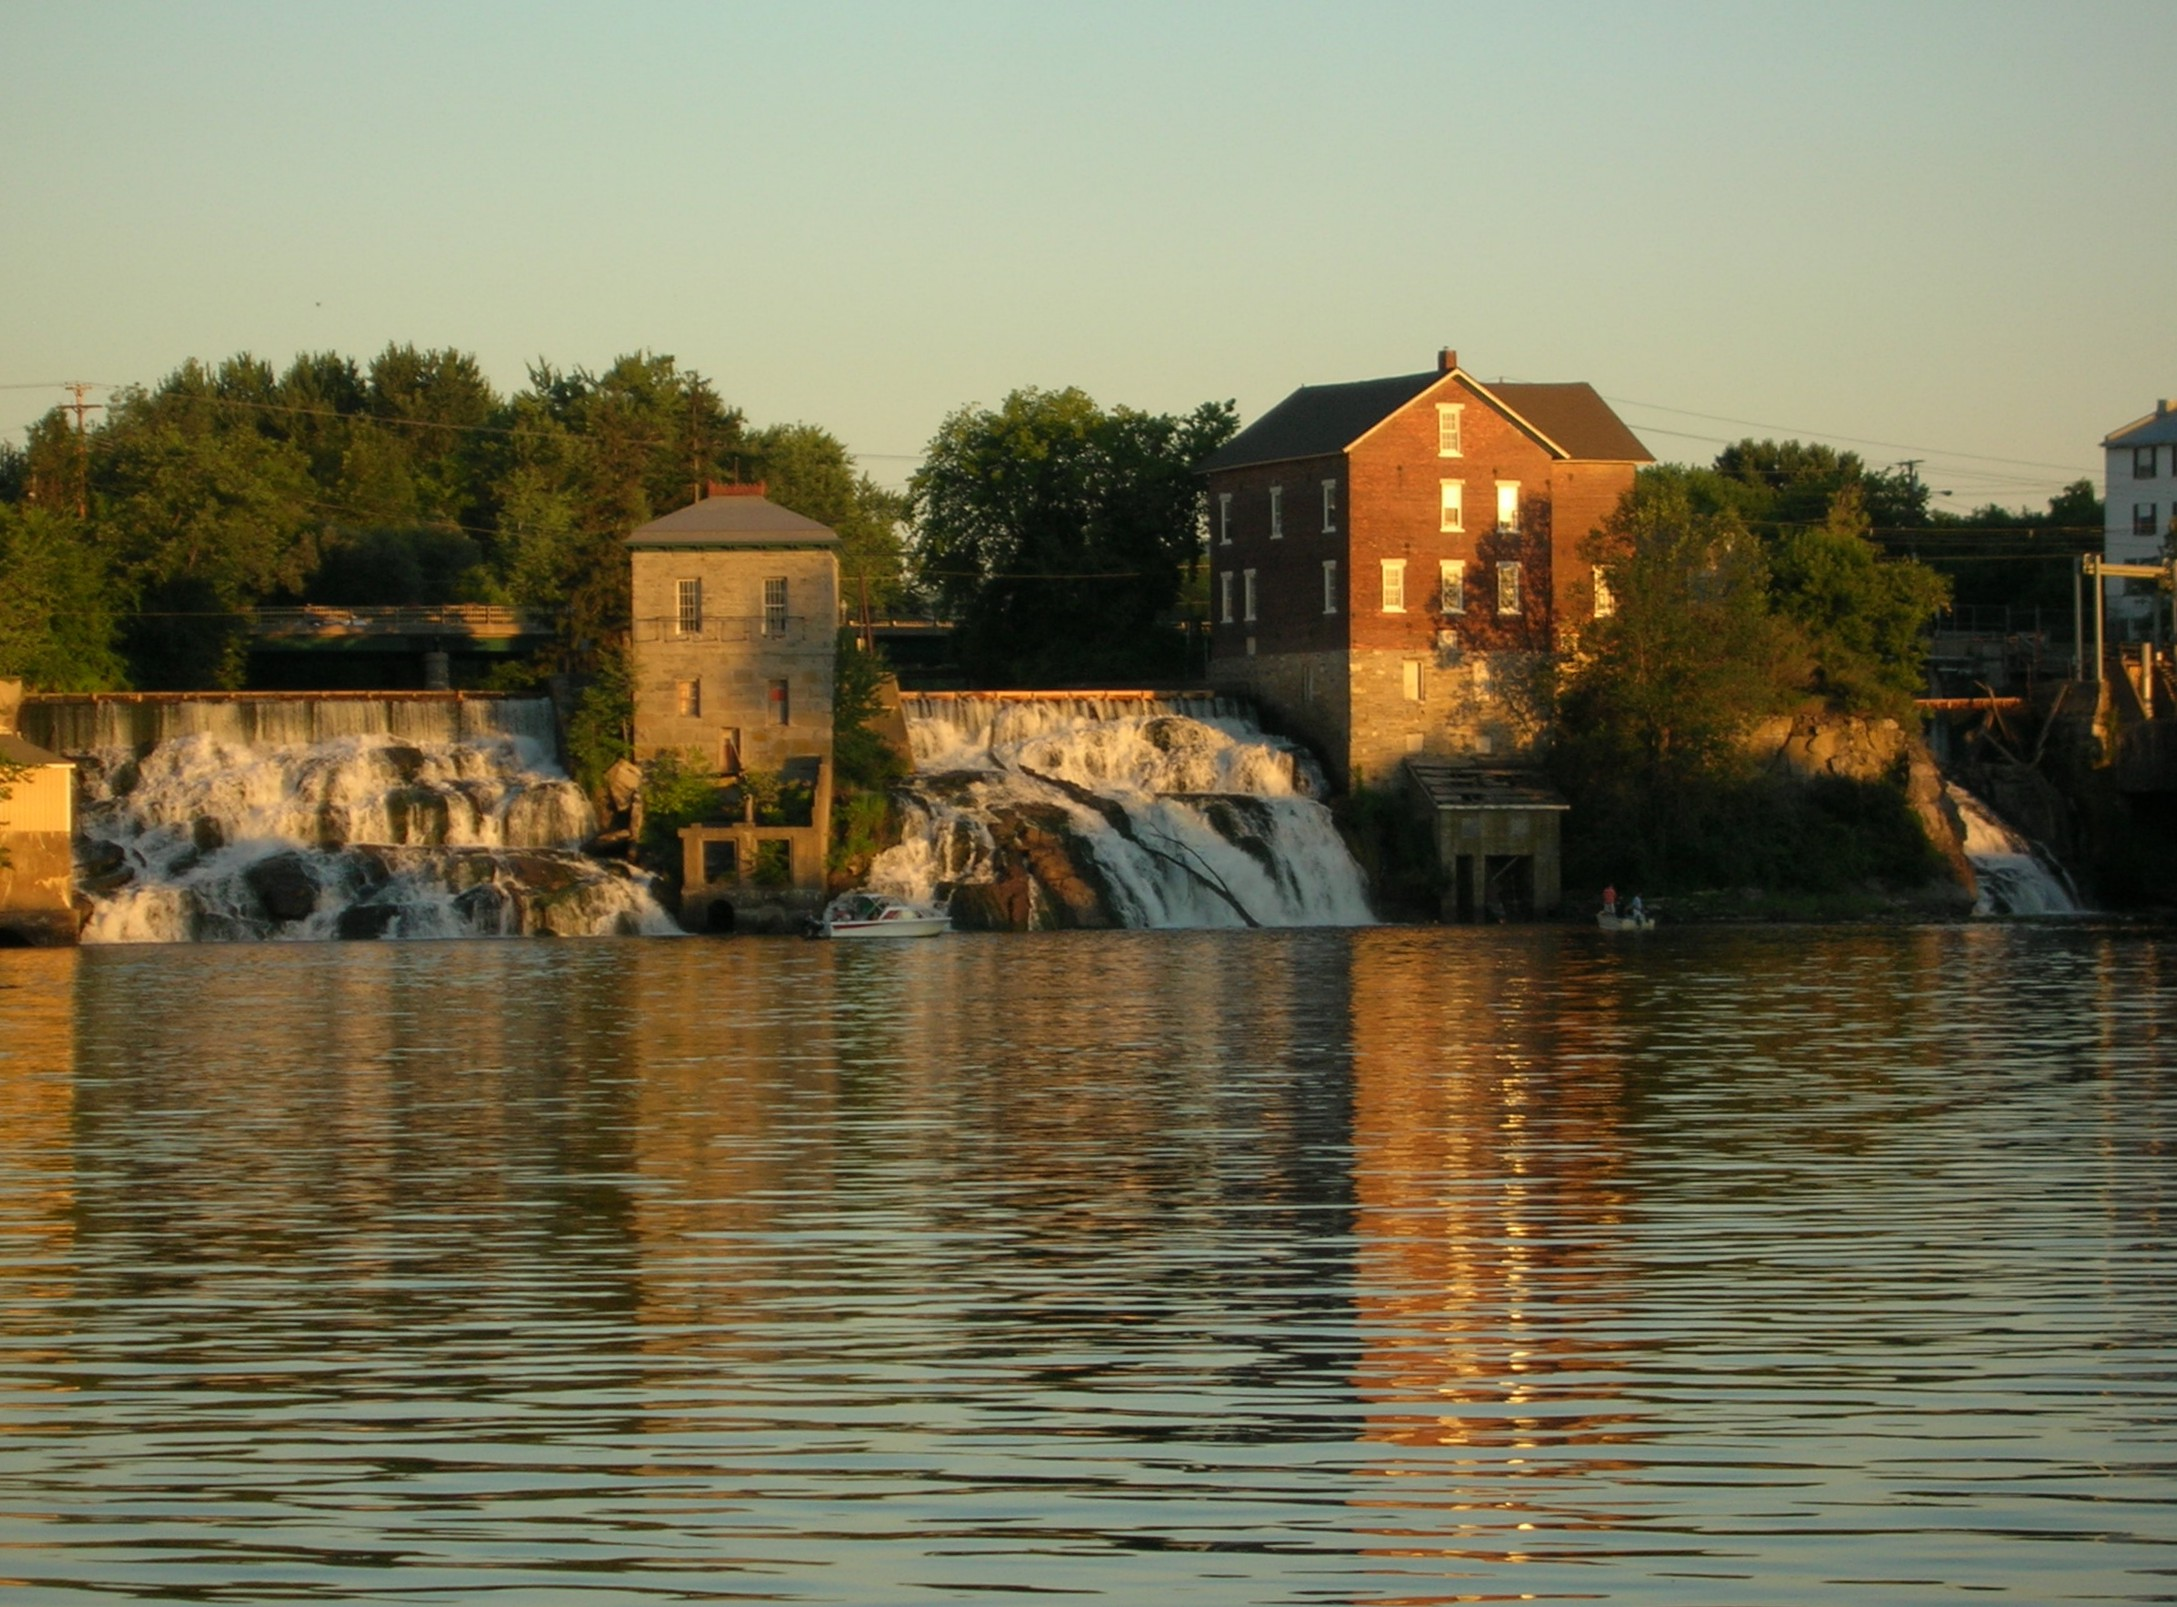 http://upload.wikimedia.org/wikipedia/commons/7/75/August_2005_view_of_falls_on_Otter_Creek_from_Vergennes_town_dock.jpg